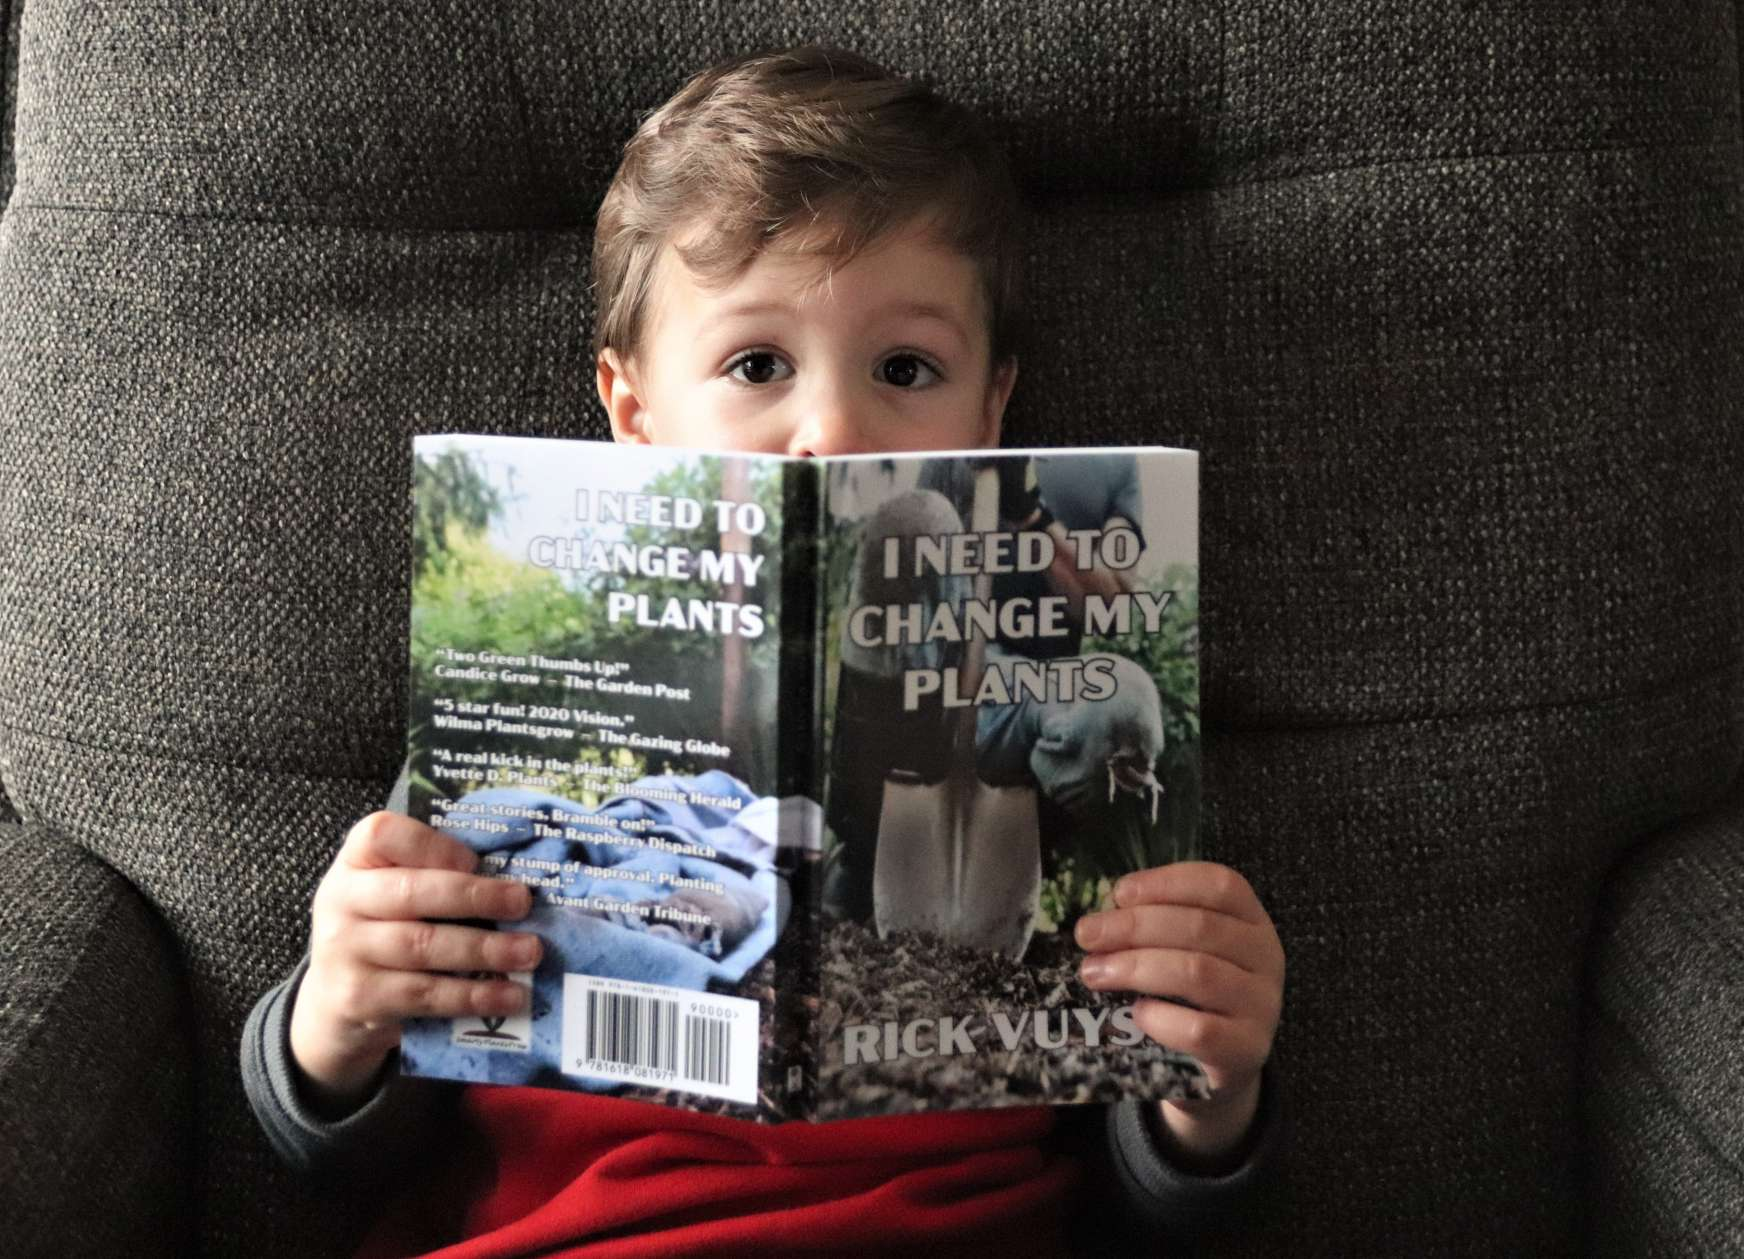 My Grandson just told me I need to change his plants.